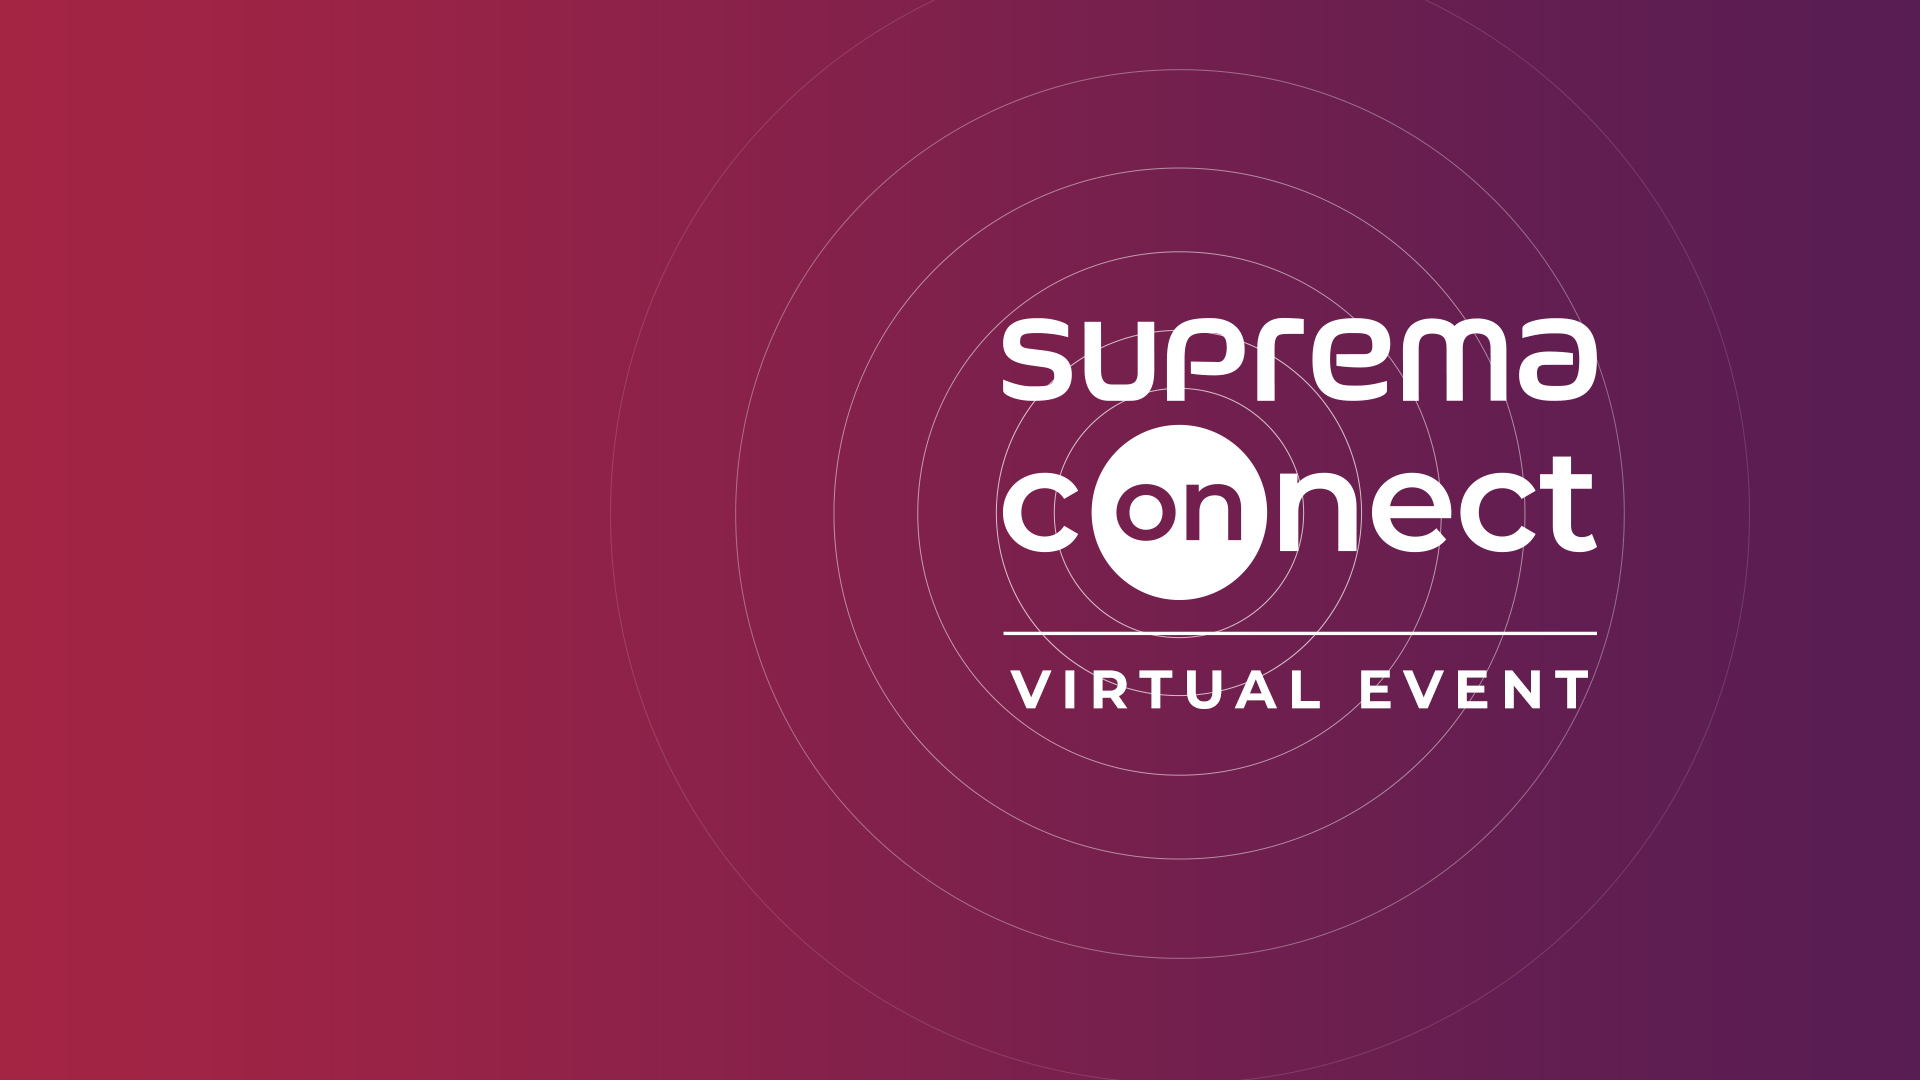 SUPREMA Connect 2020